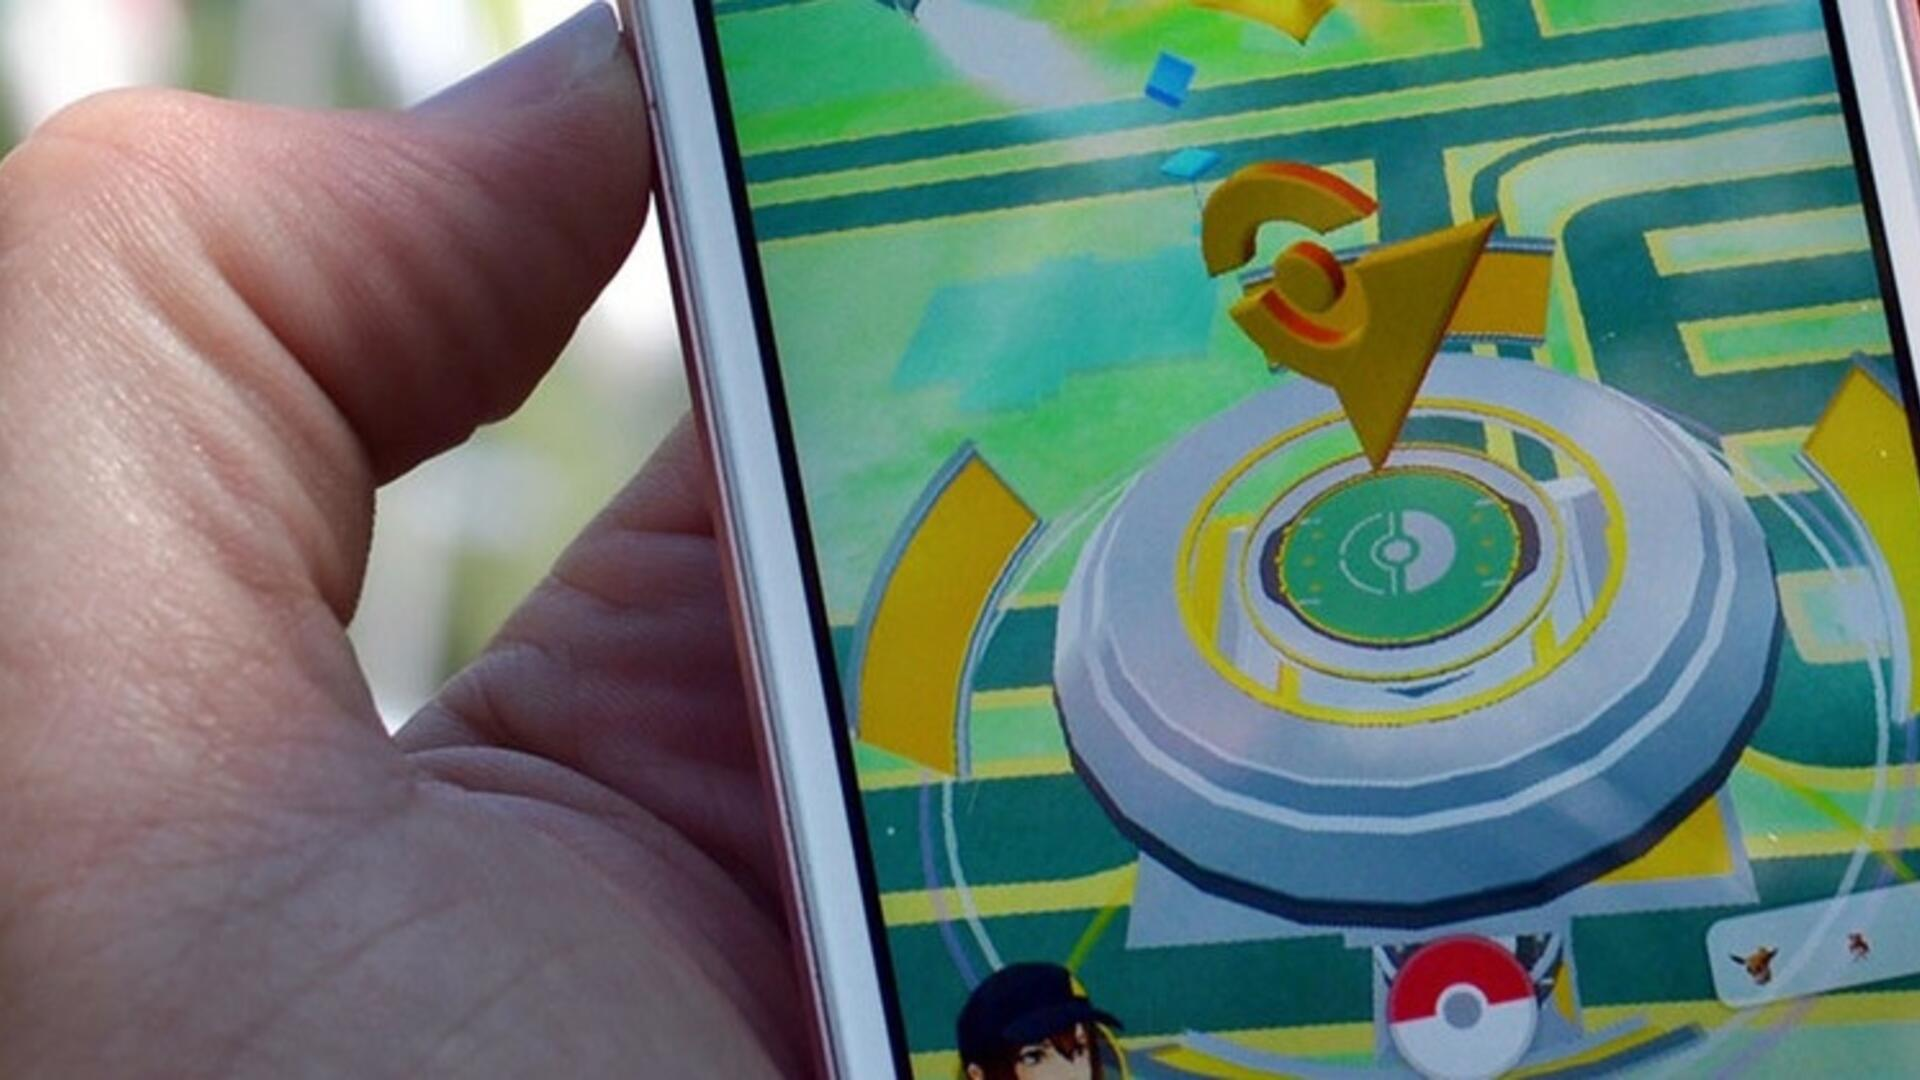 Where are all the Pokémon in Pokémon GO? Why Can't I Find